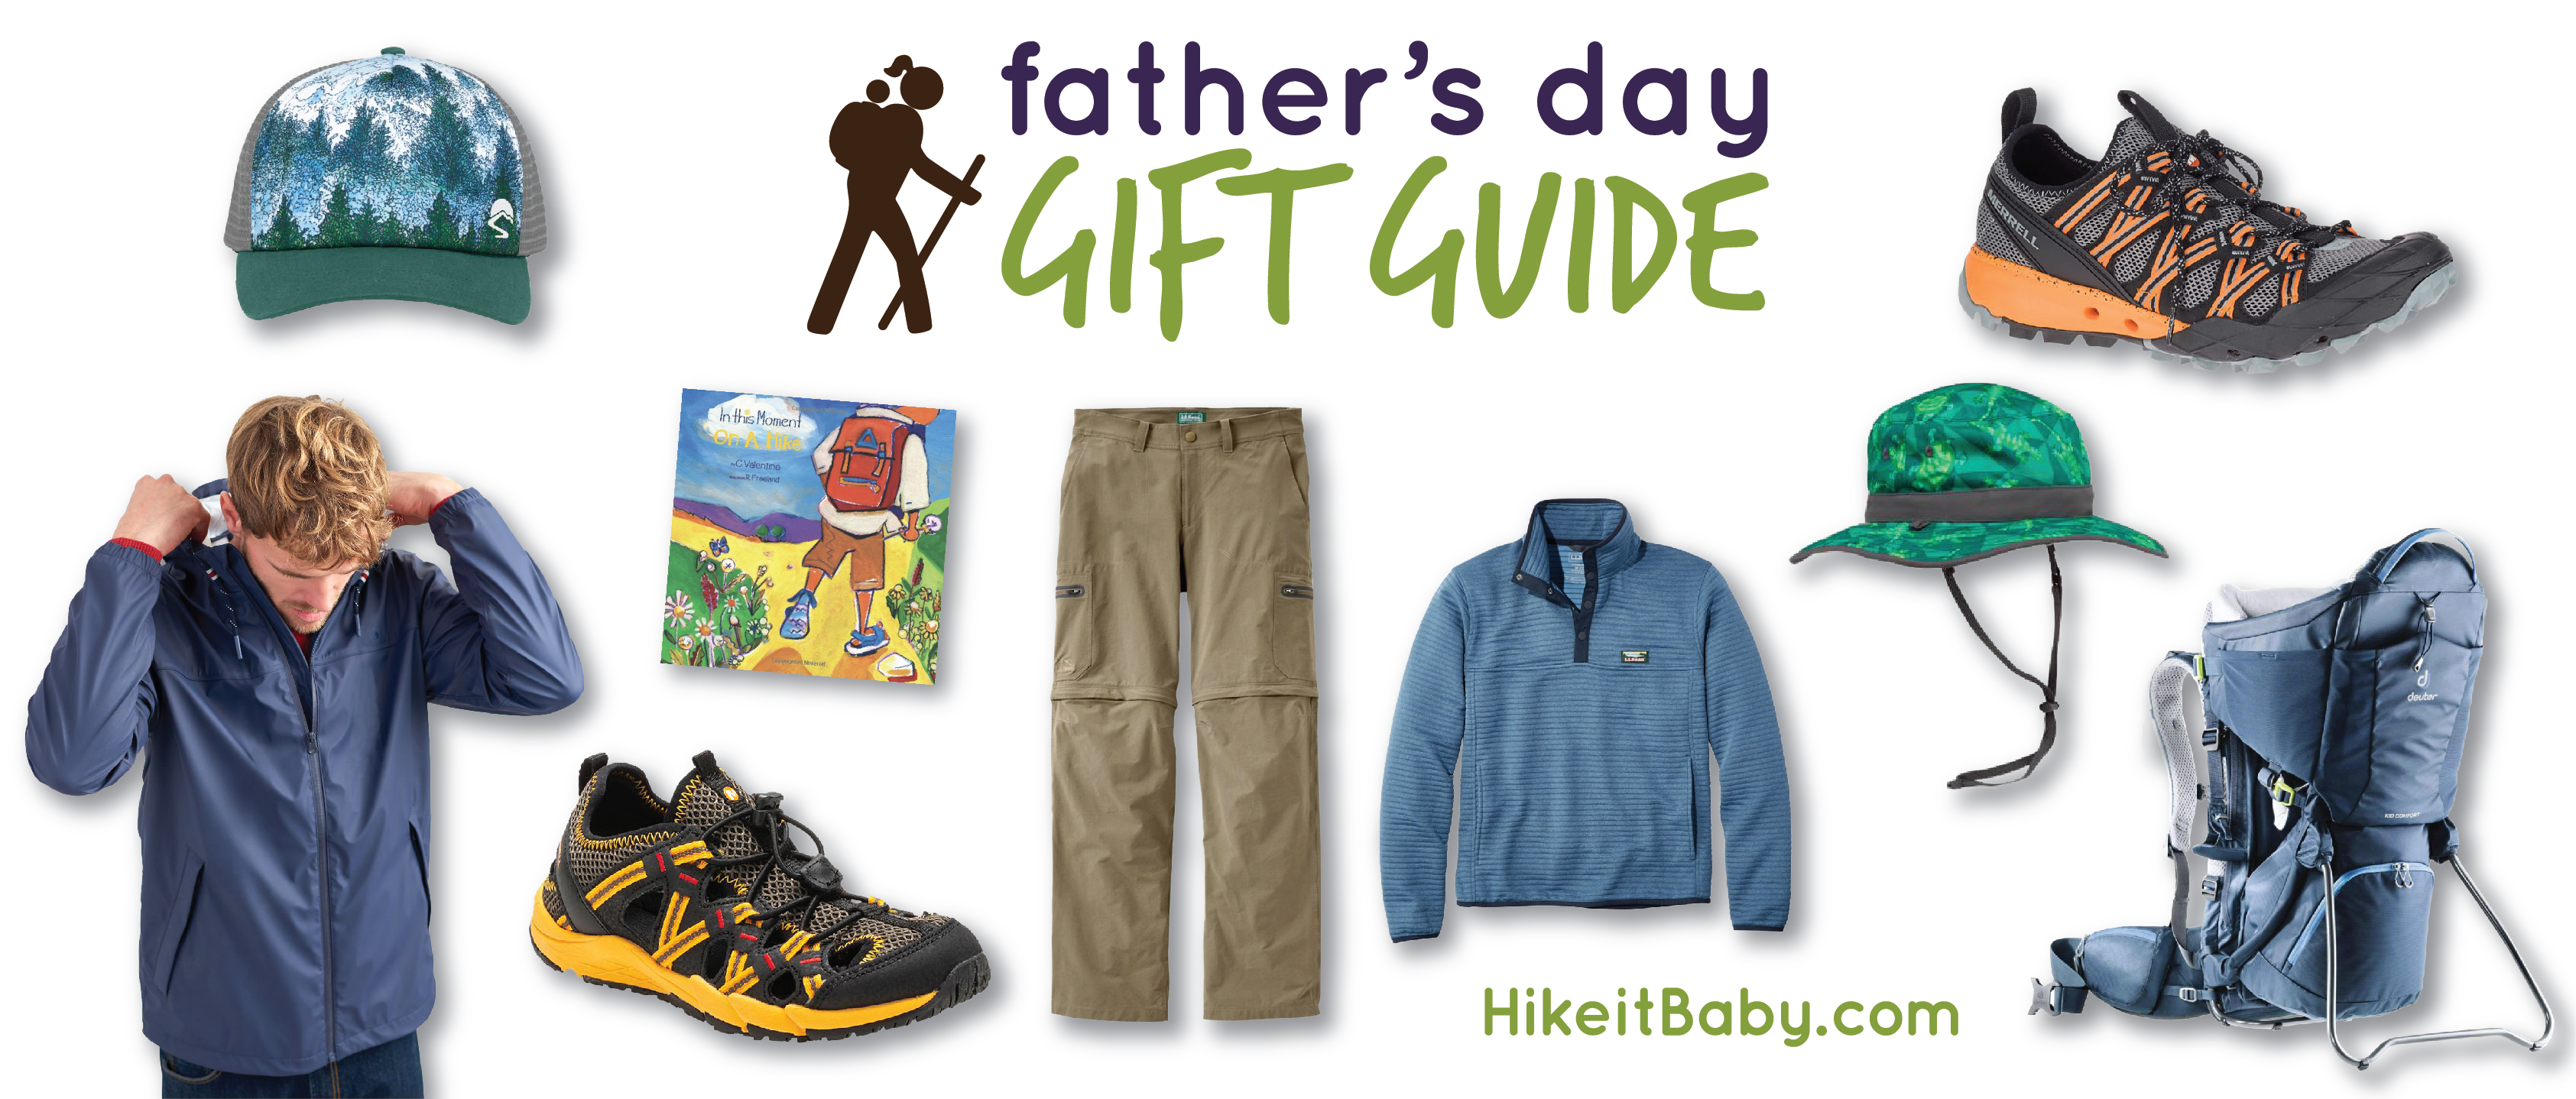 91d19074 Father's Day Gift Guide 2019 - Hike it Baby